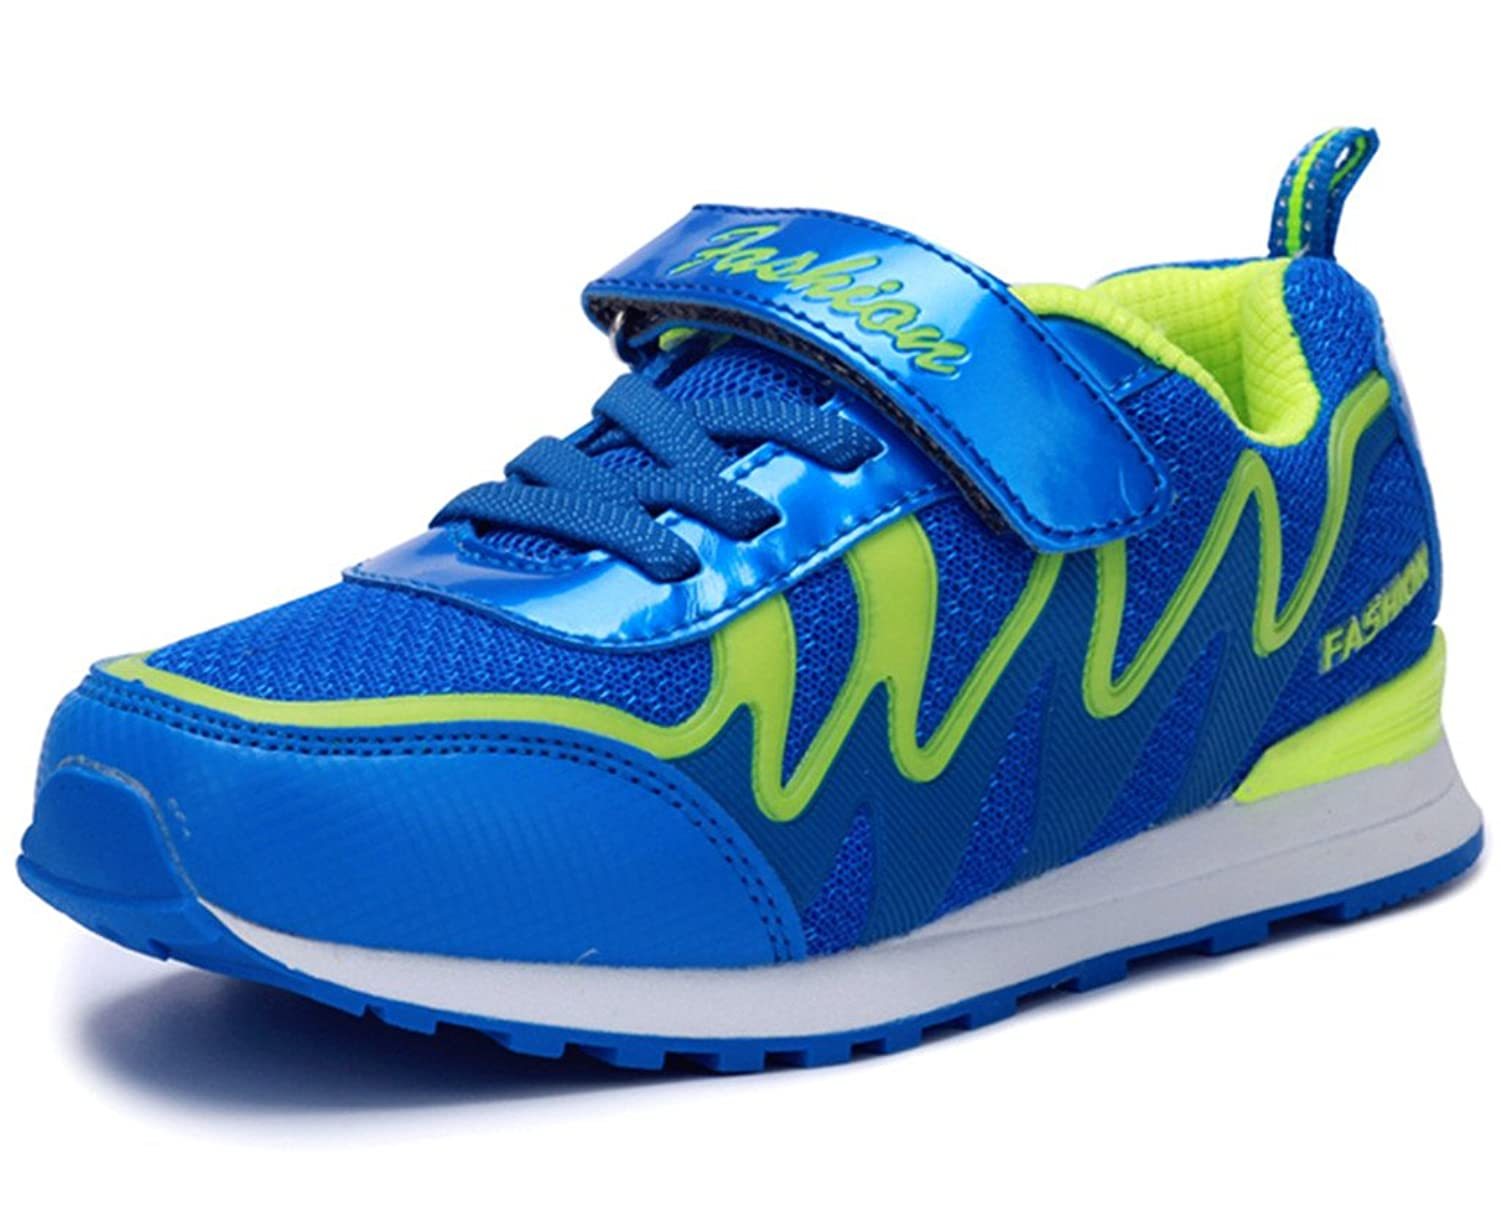 a11b75f9a9ecb5 DADAWEN Boy s Girl s Athletic Easy Strap Breathable Sneakers Trail Running  Shoes (Toddler Little Kid Big Kid) Blue US Size 1 M Little Kid